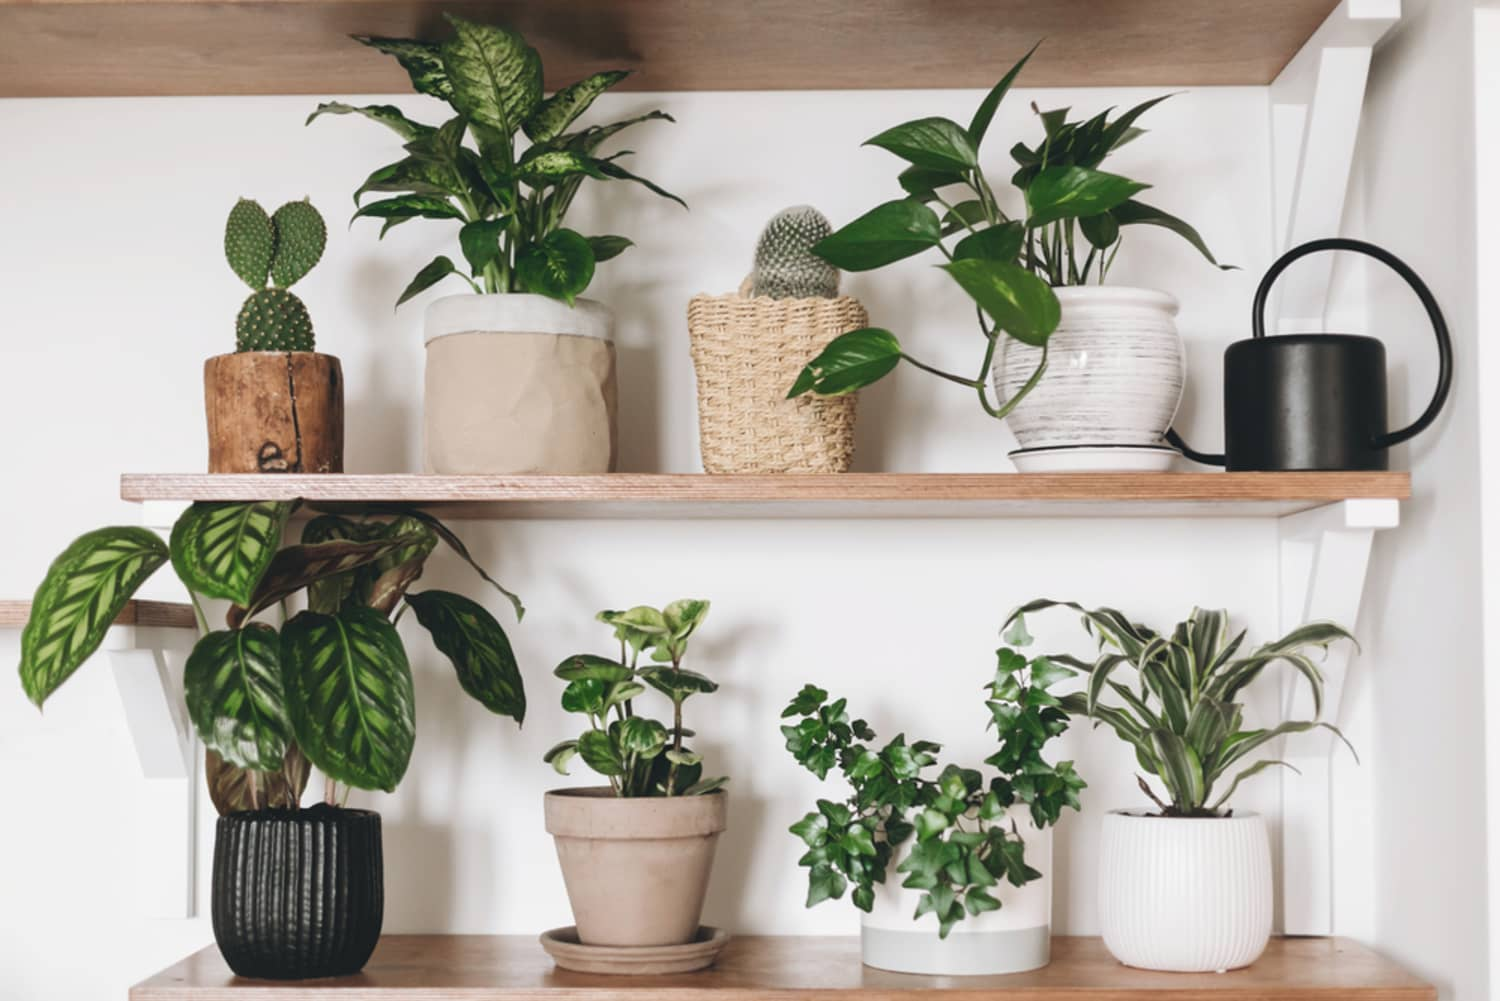 Ahead of Amazon Prime Day, Tons of Houseplants Are Already on Sale